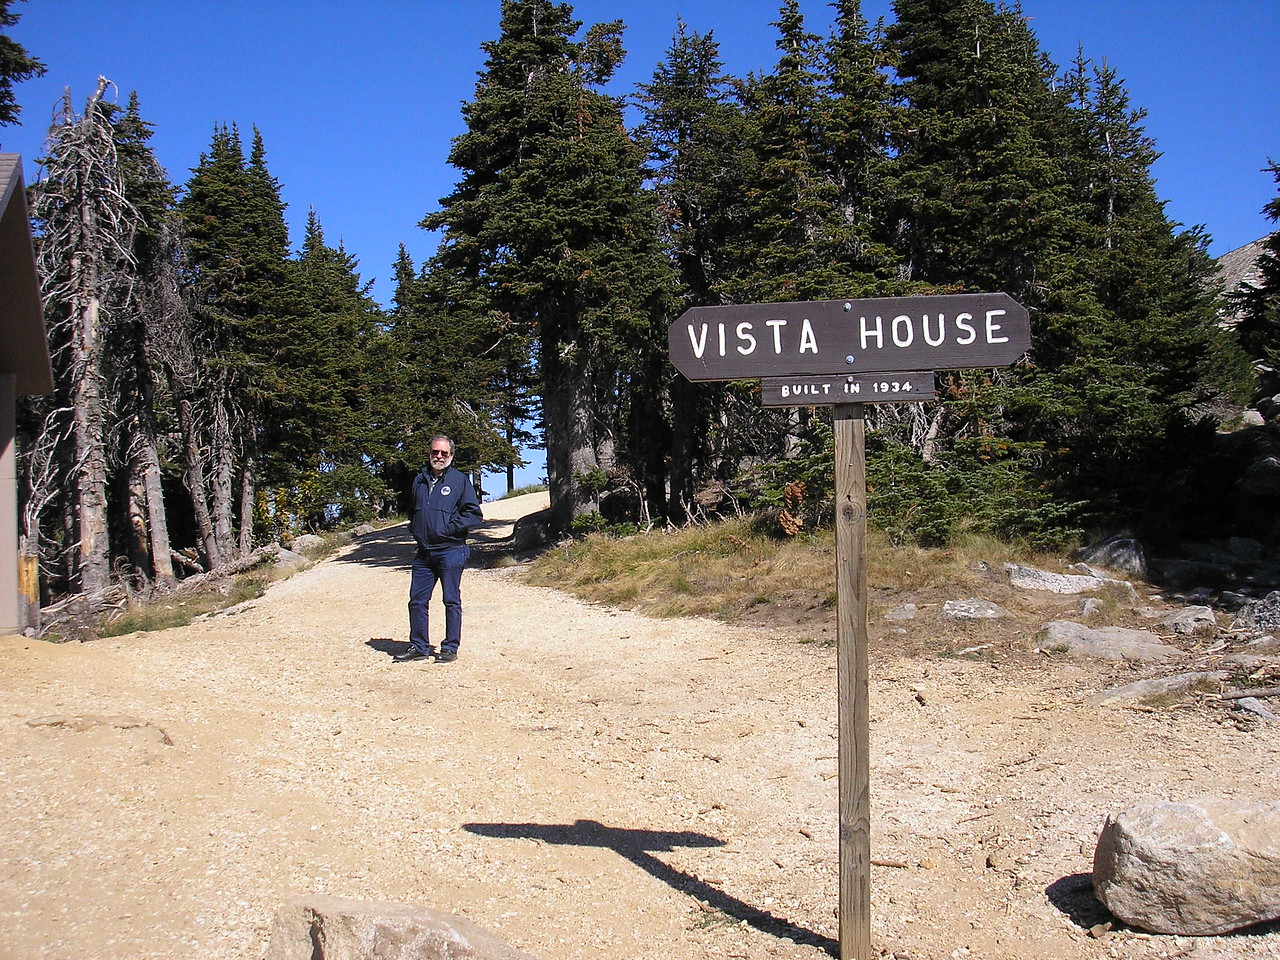 And the Vista house was built by the Civilian Conservation Corps.  It is on top of Mt. Spokane.